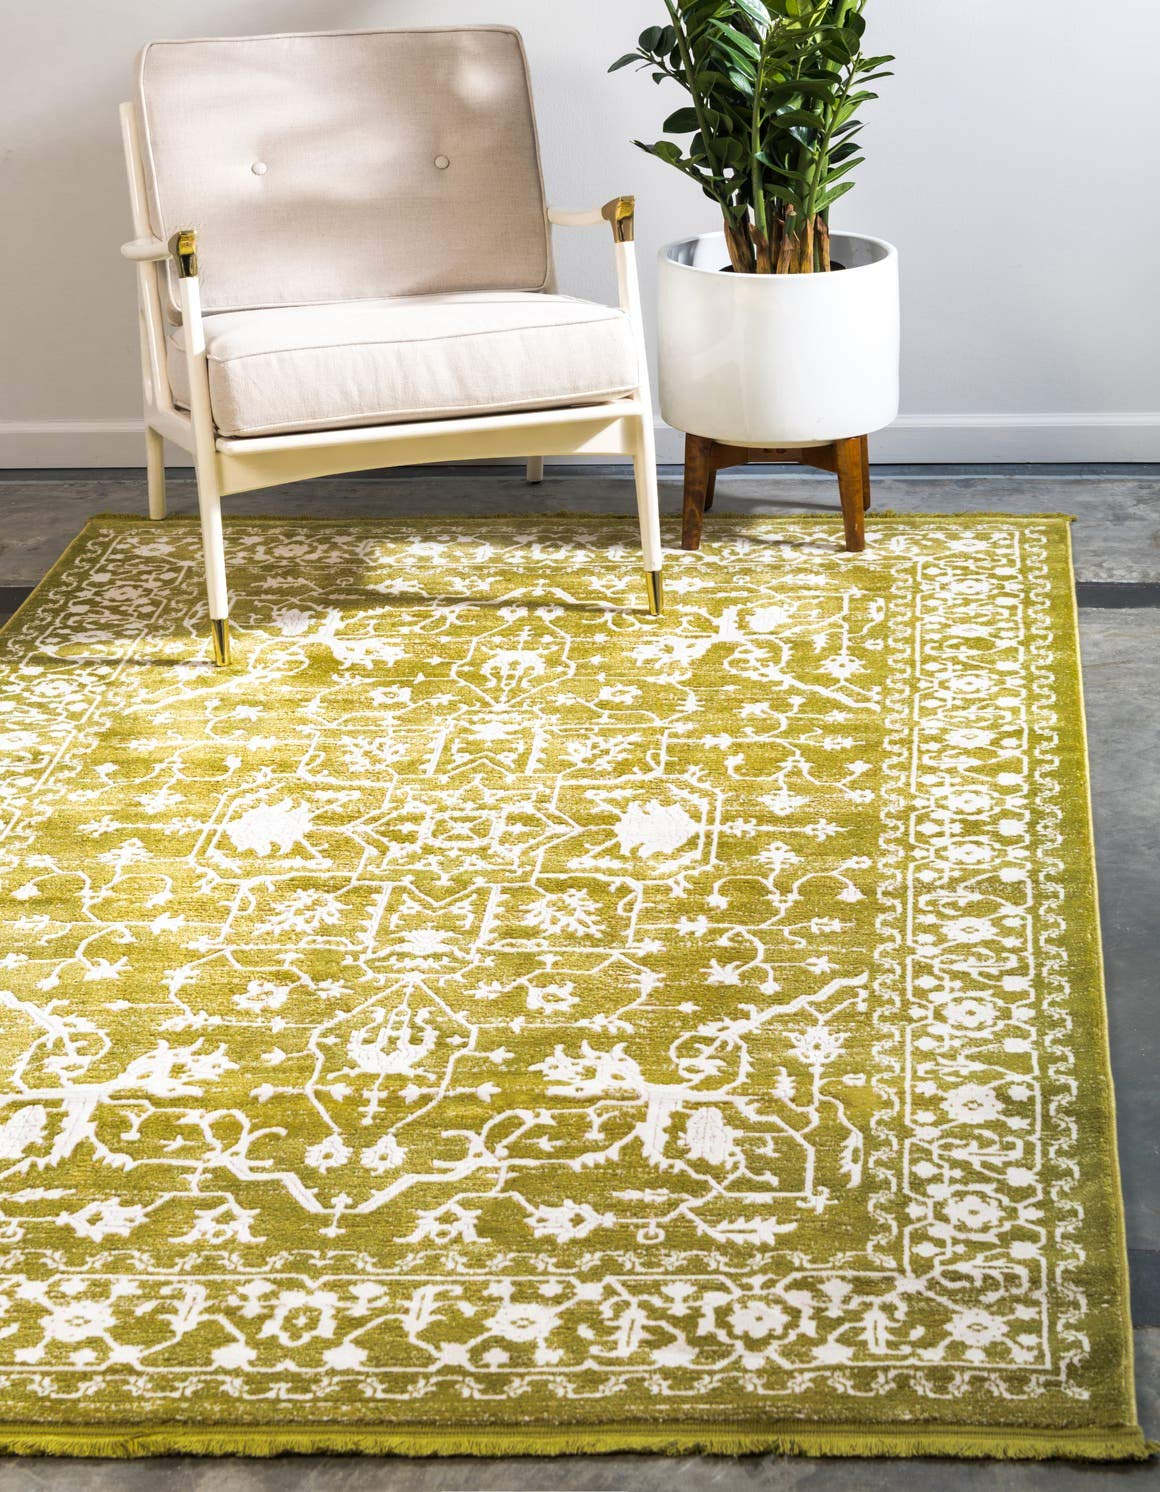 Unique Loom New Classical Collection Traditional Distressed Vintage Classic Light Green Area Rug 4 0 x 6 0